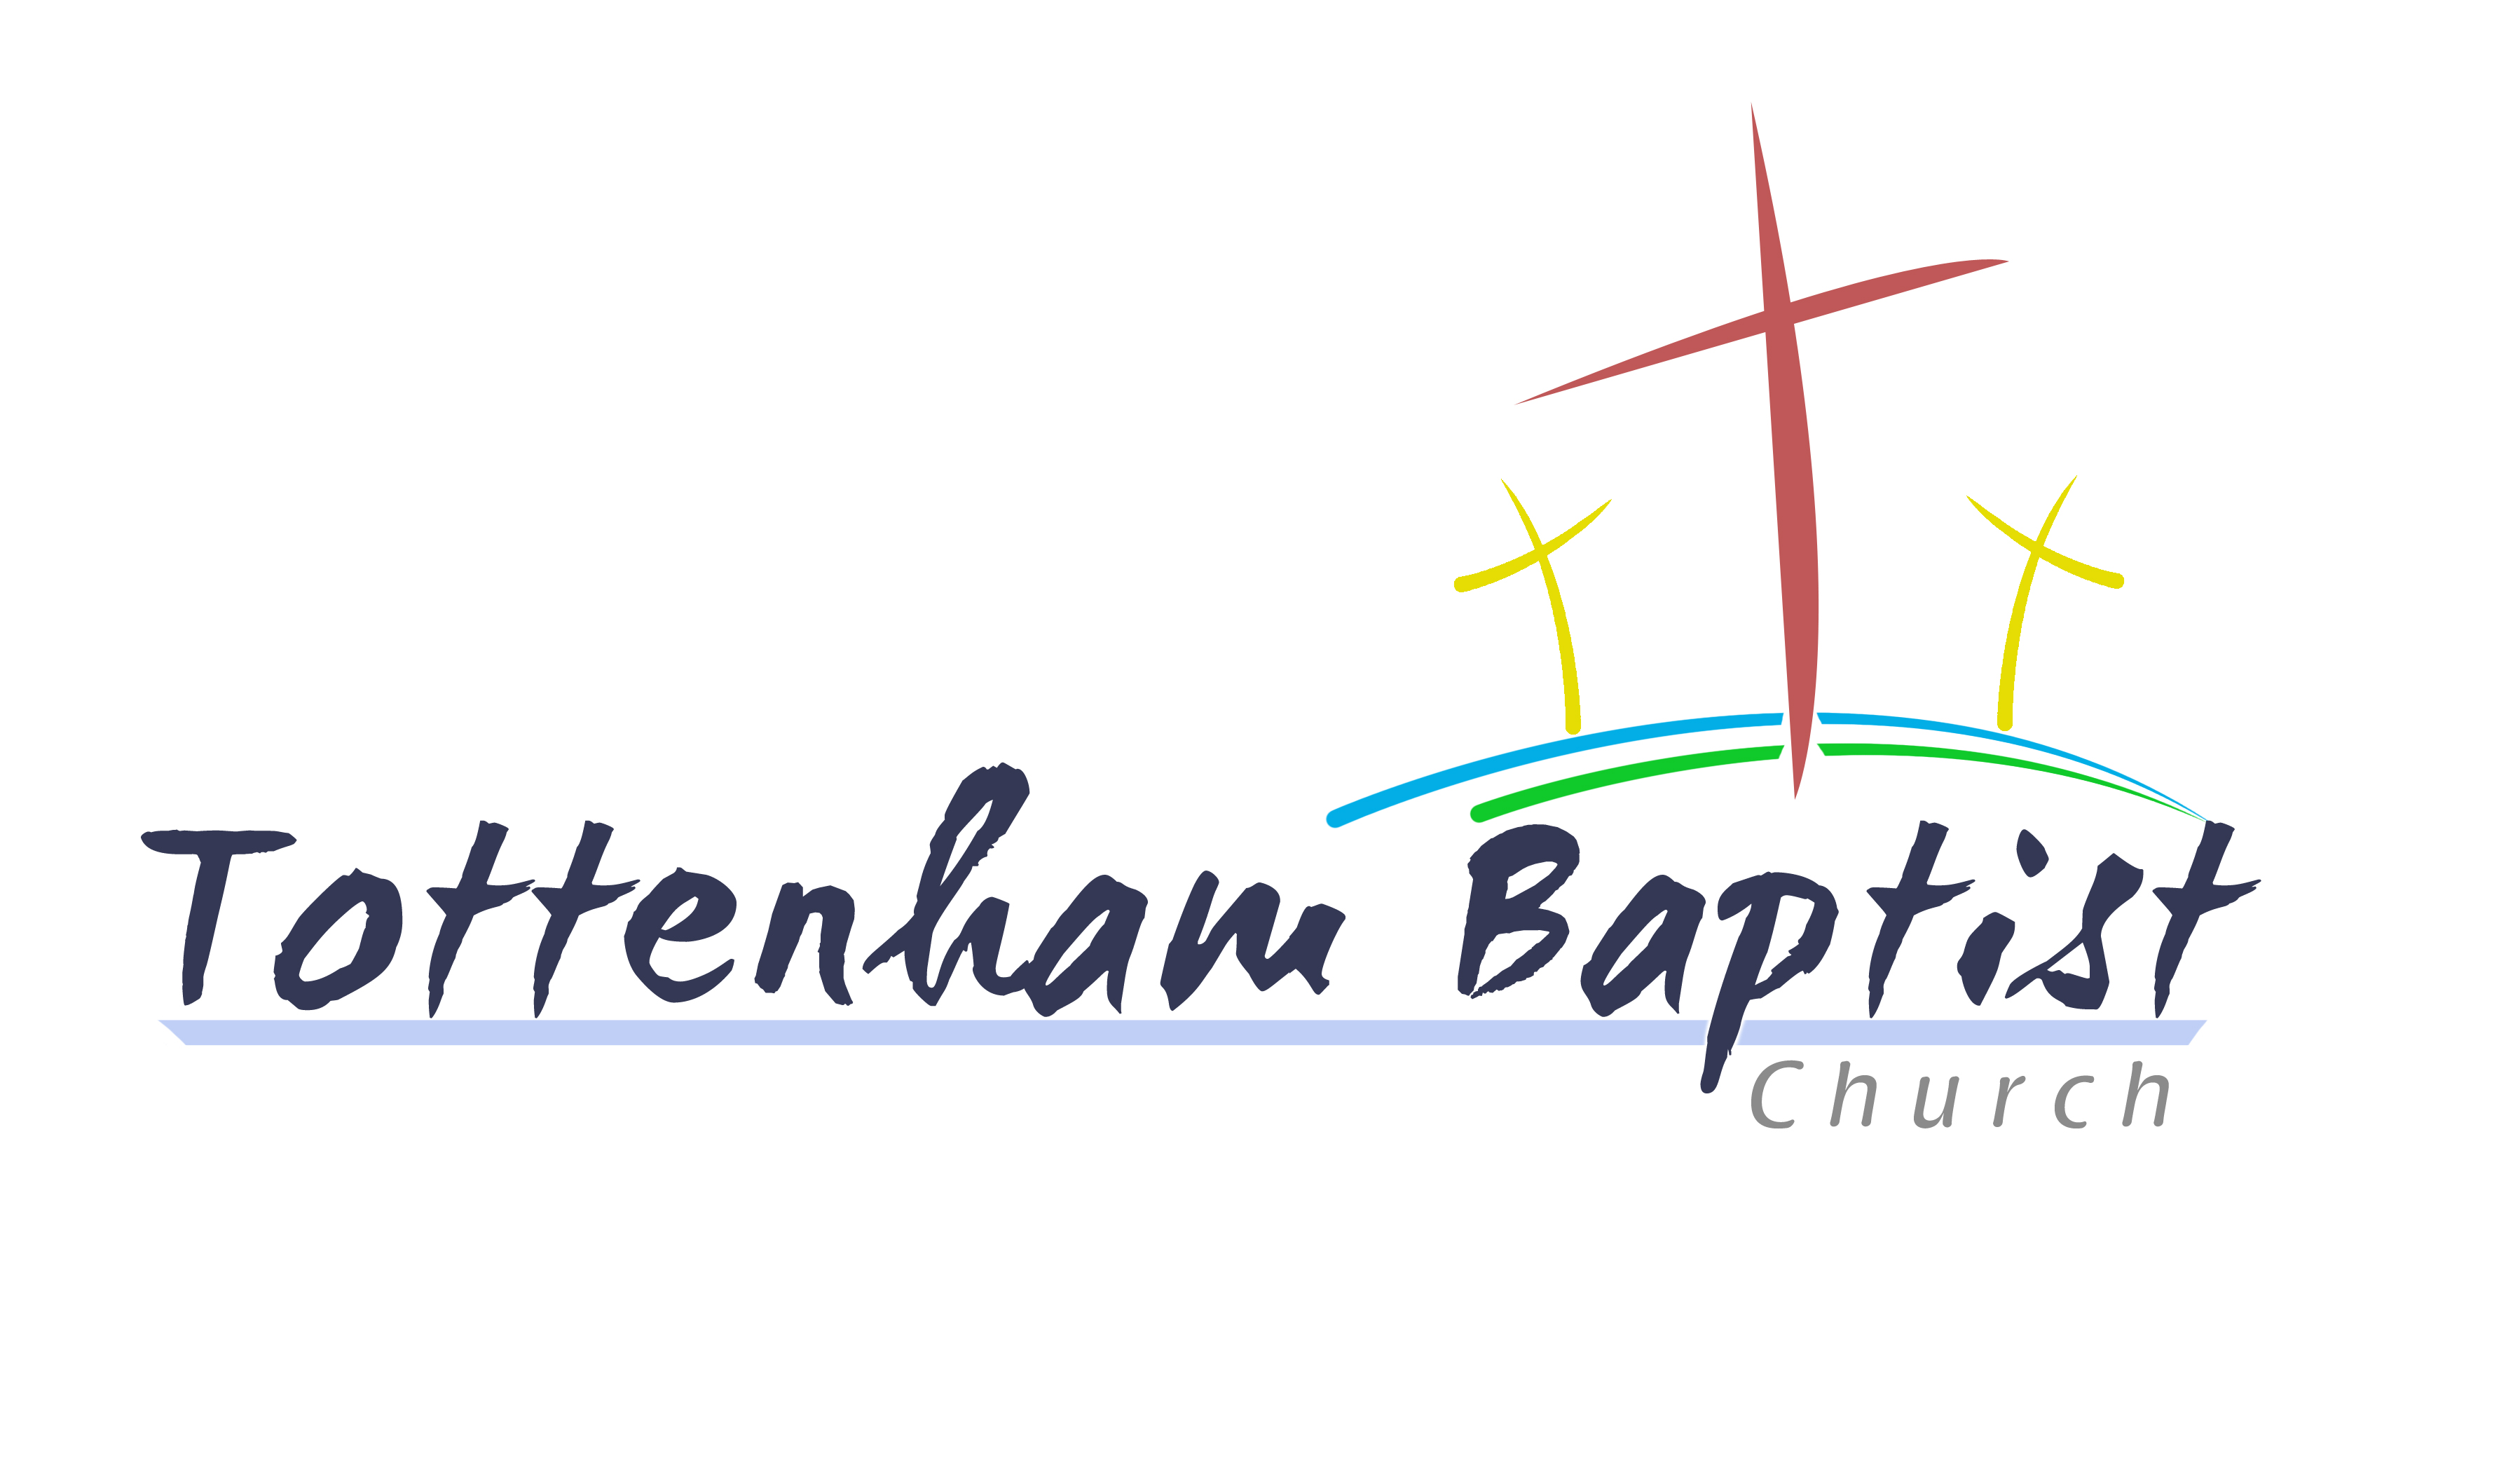 Tottenham Baptist Church